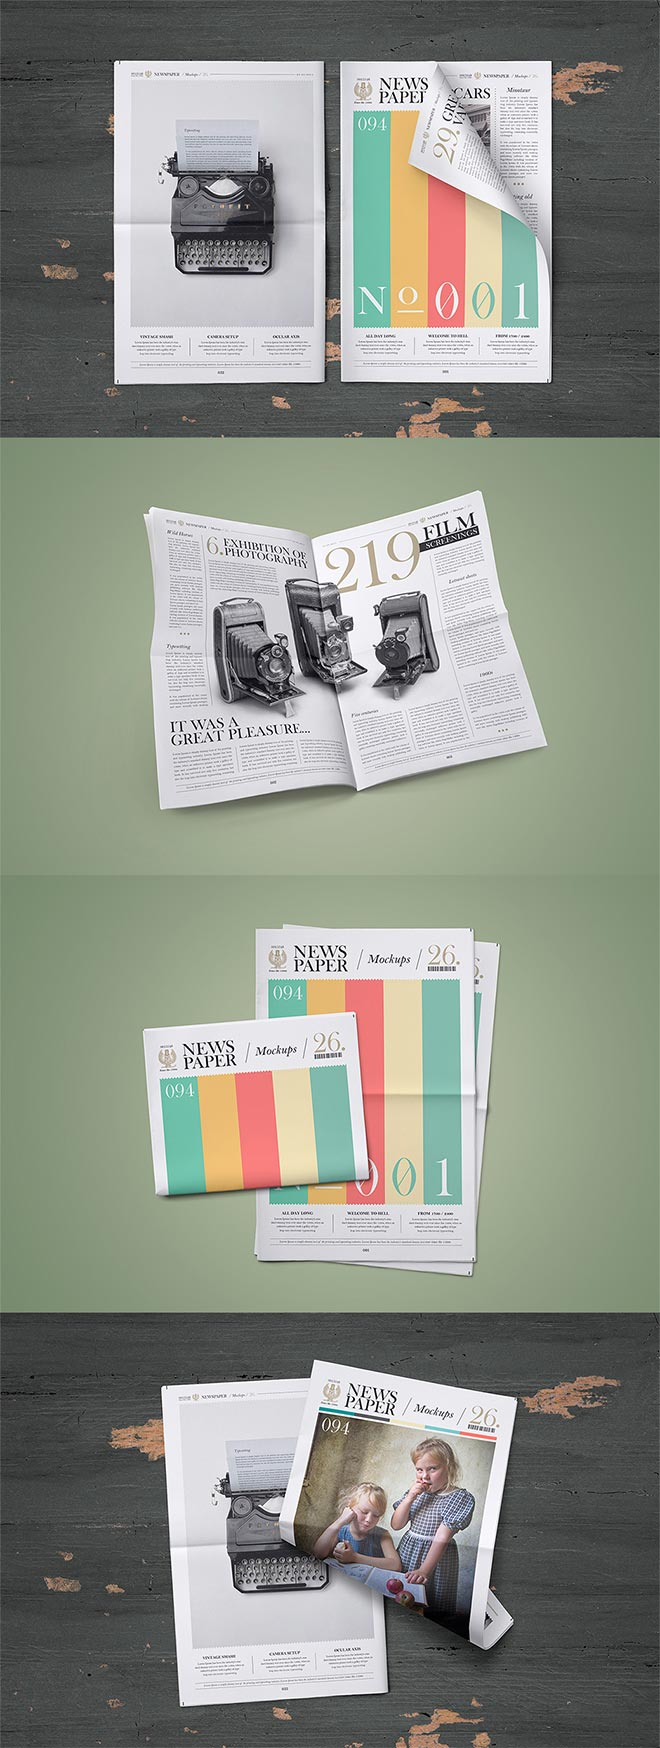 Newspaper Mock-Up Set